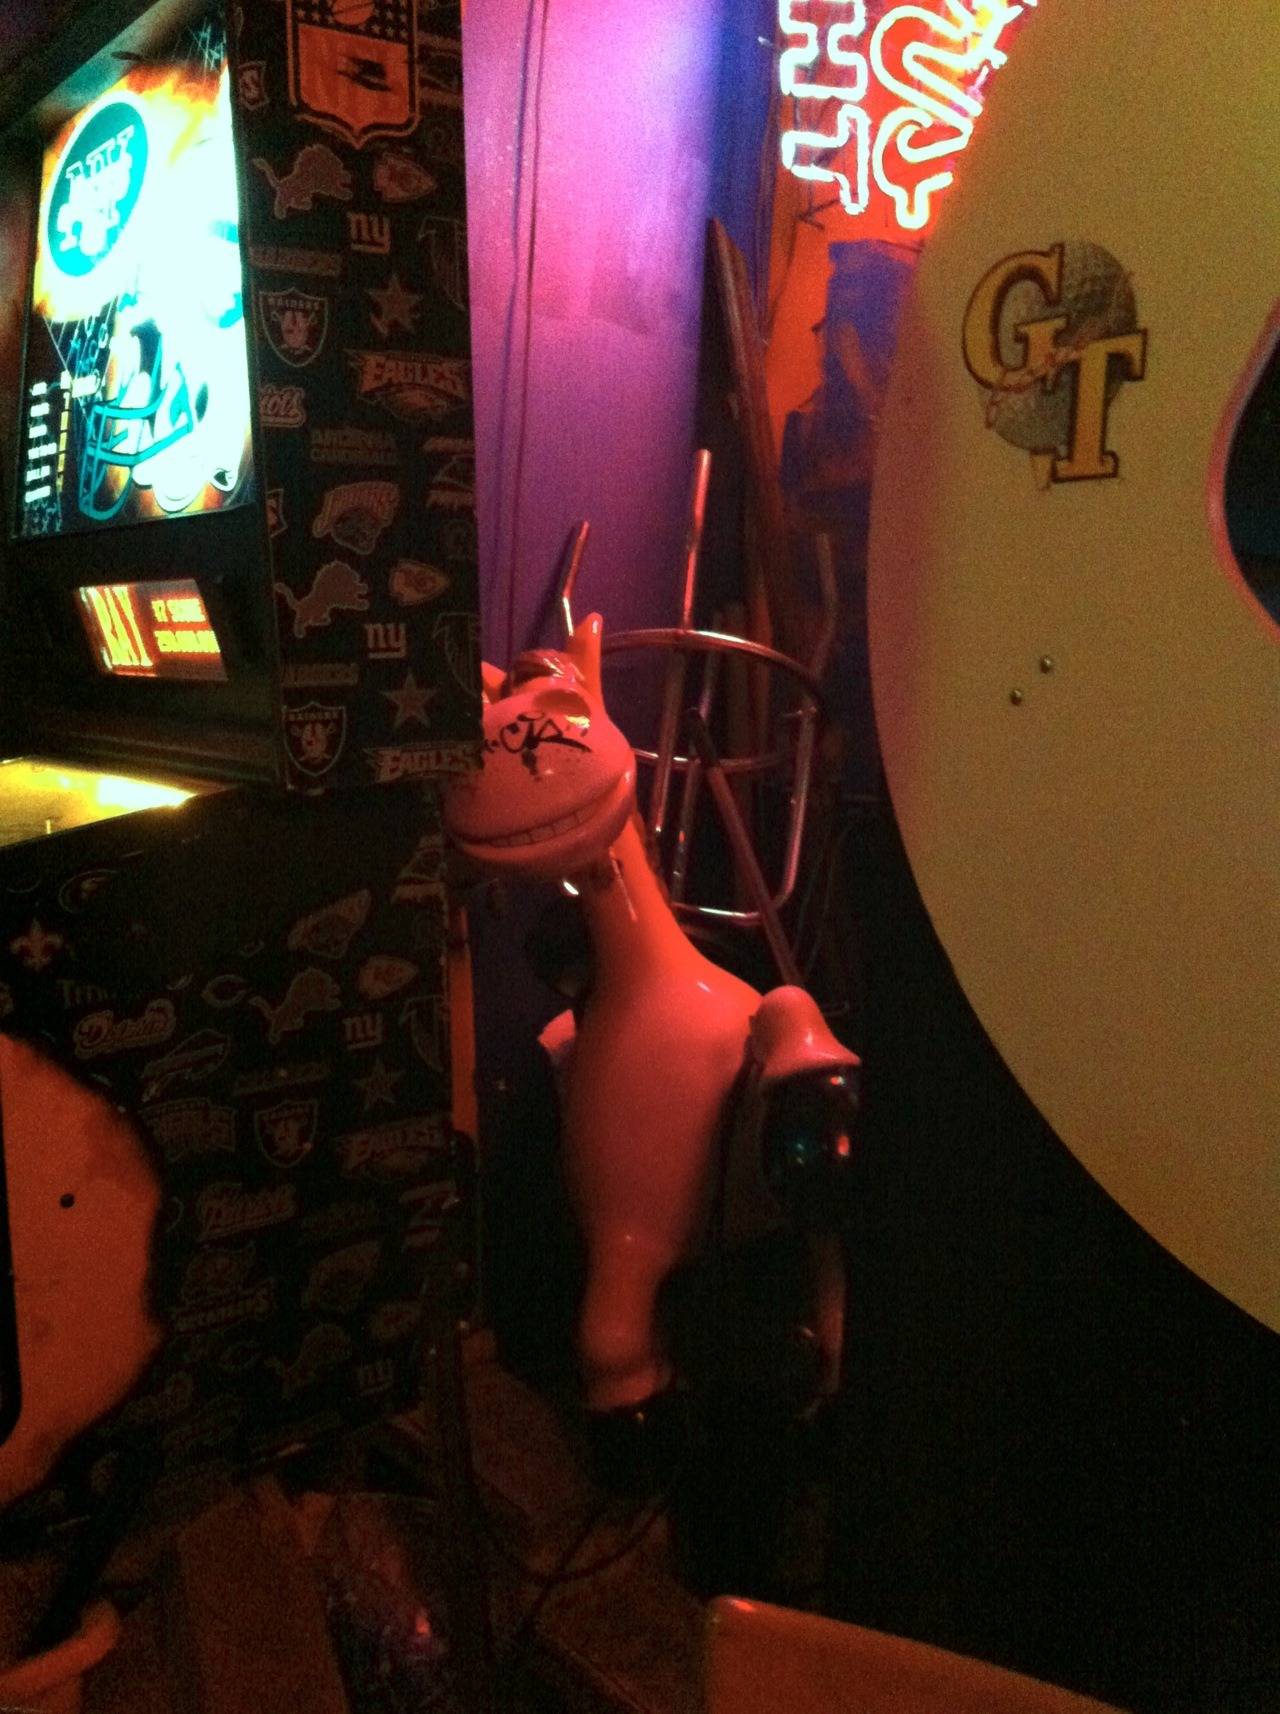 evan:  Towards the end of the night, I noticed this creepy horse thing staring at me from the corner of the bar. The next morning, when the food poisoning hit, I knew I'd made a terrible mistake.